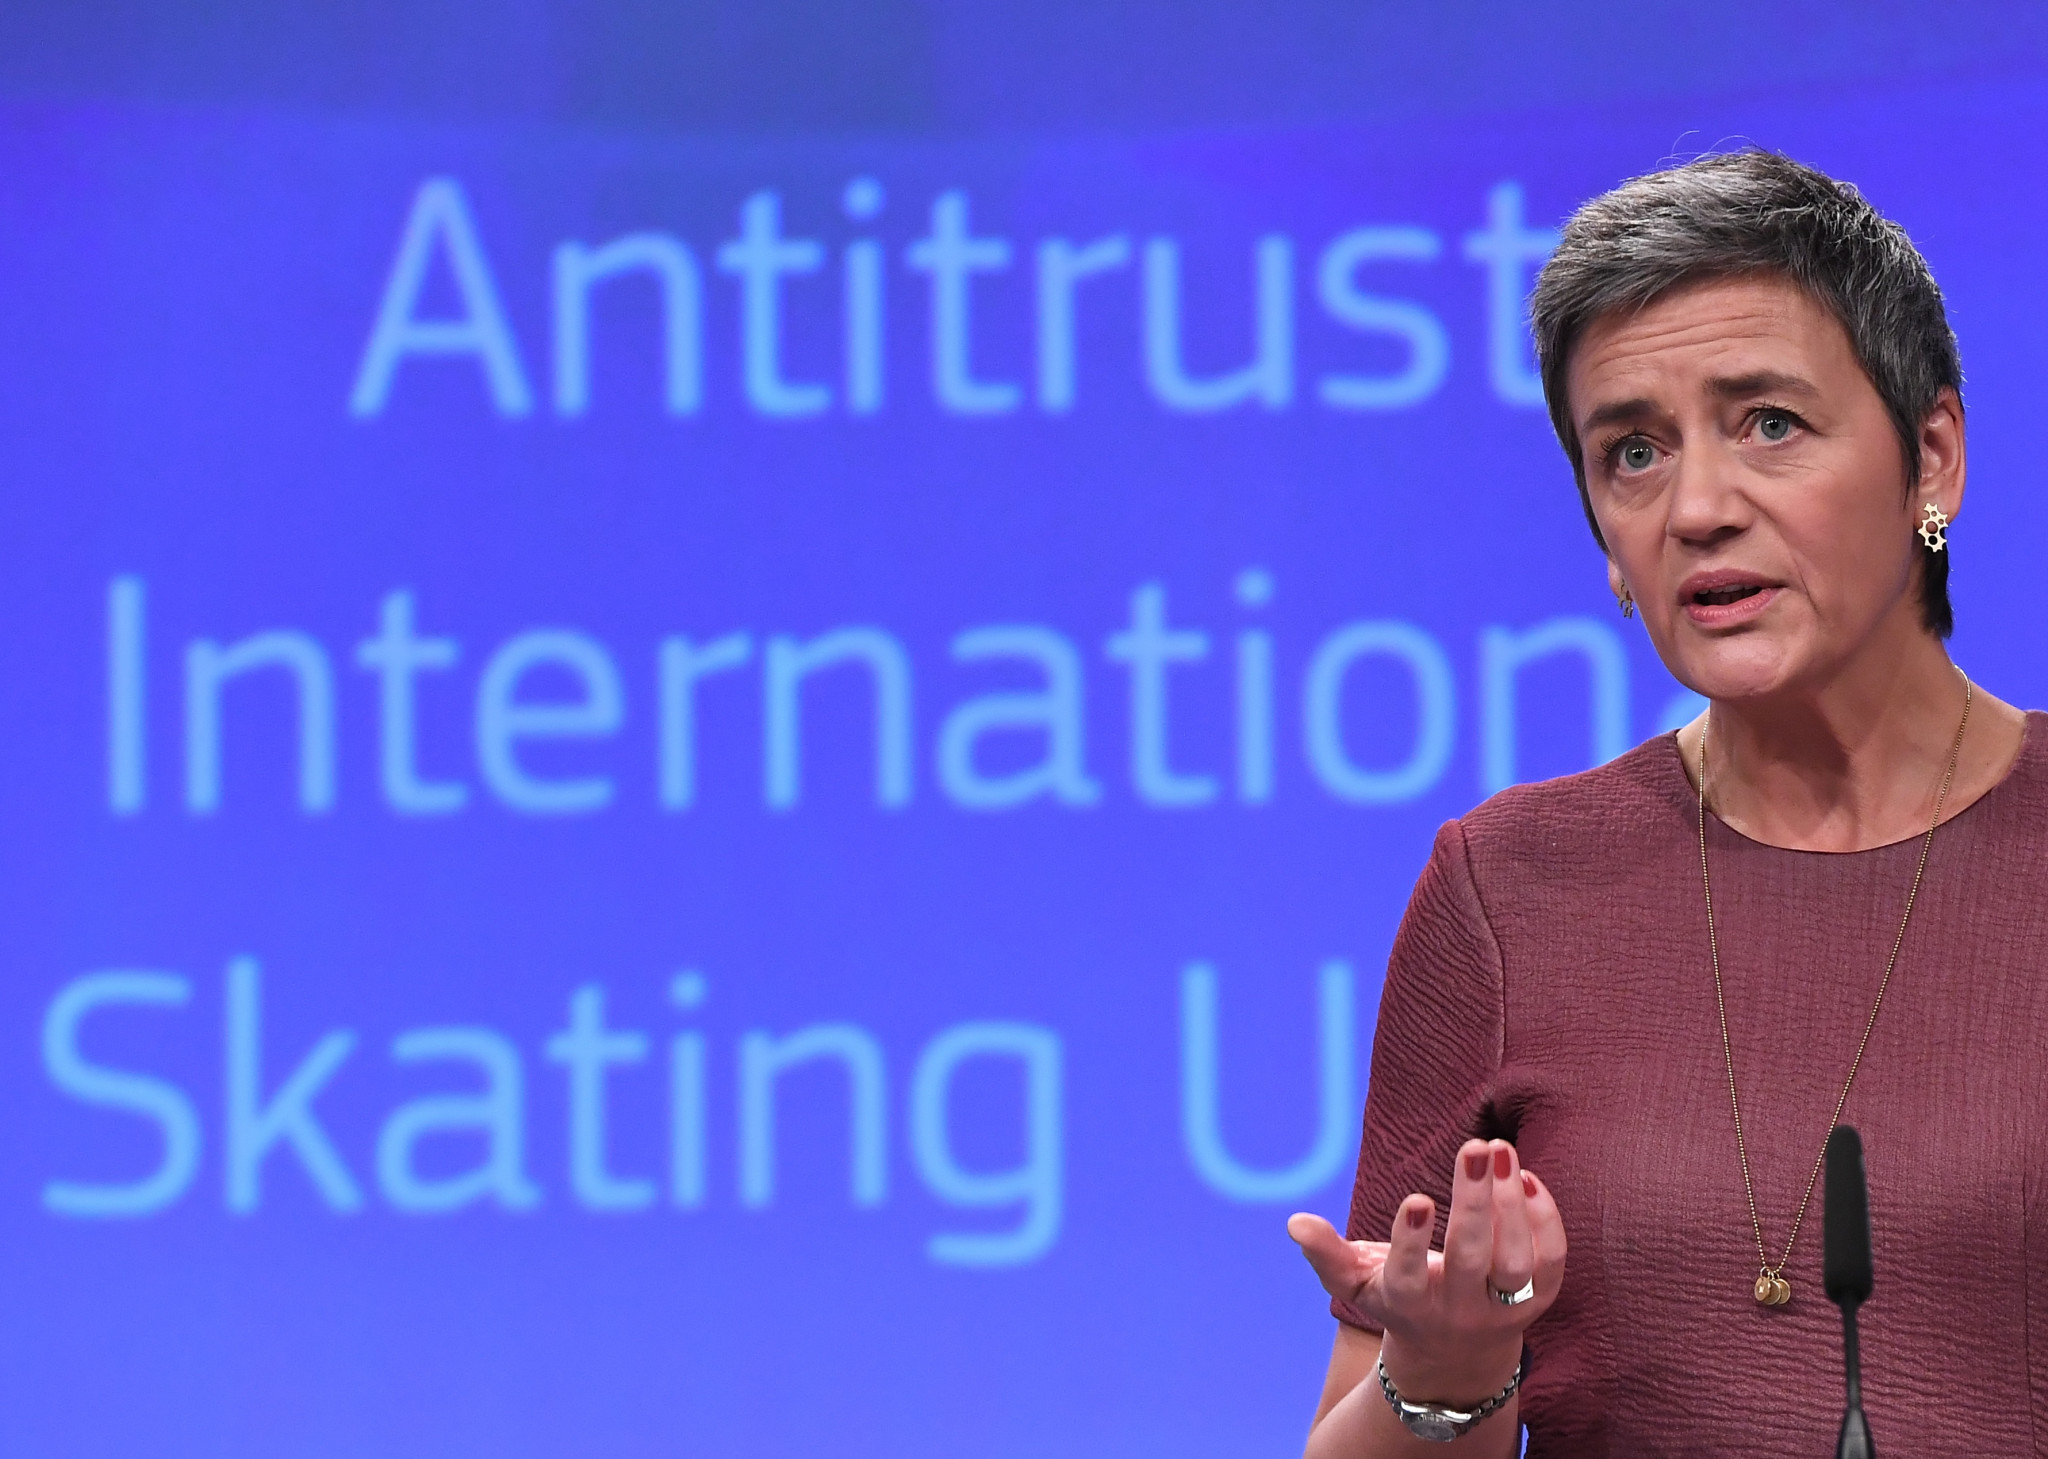 European Commissioner for Competition Margrethe Vestager addresses a press conference about the International Skating Union's (ISU) restrictive penalties on athletes which breach EU competition rules, at the European Commission in Brussels ©Getty Images